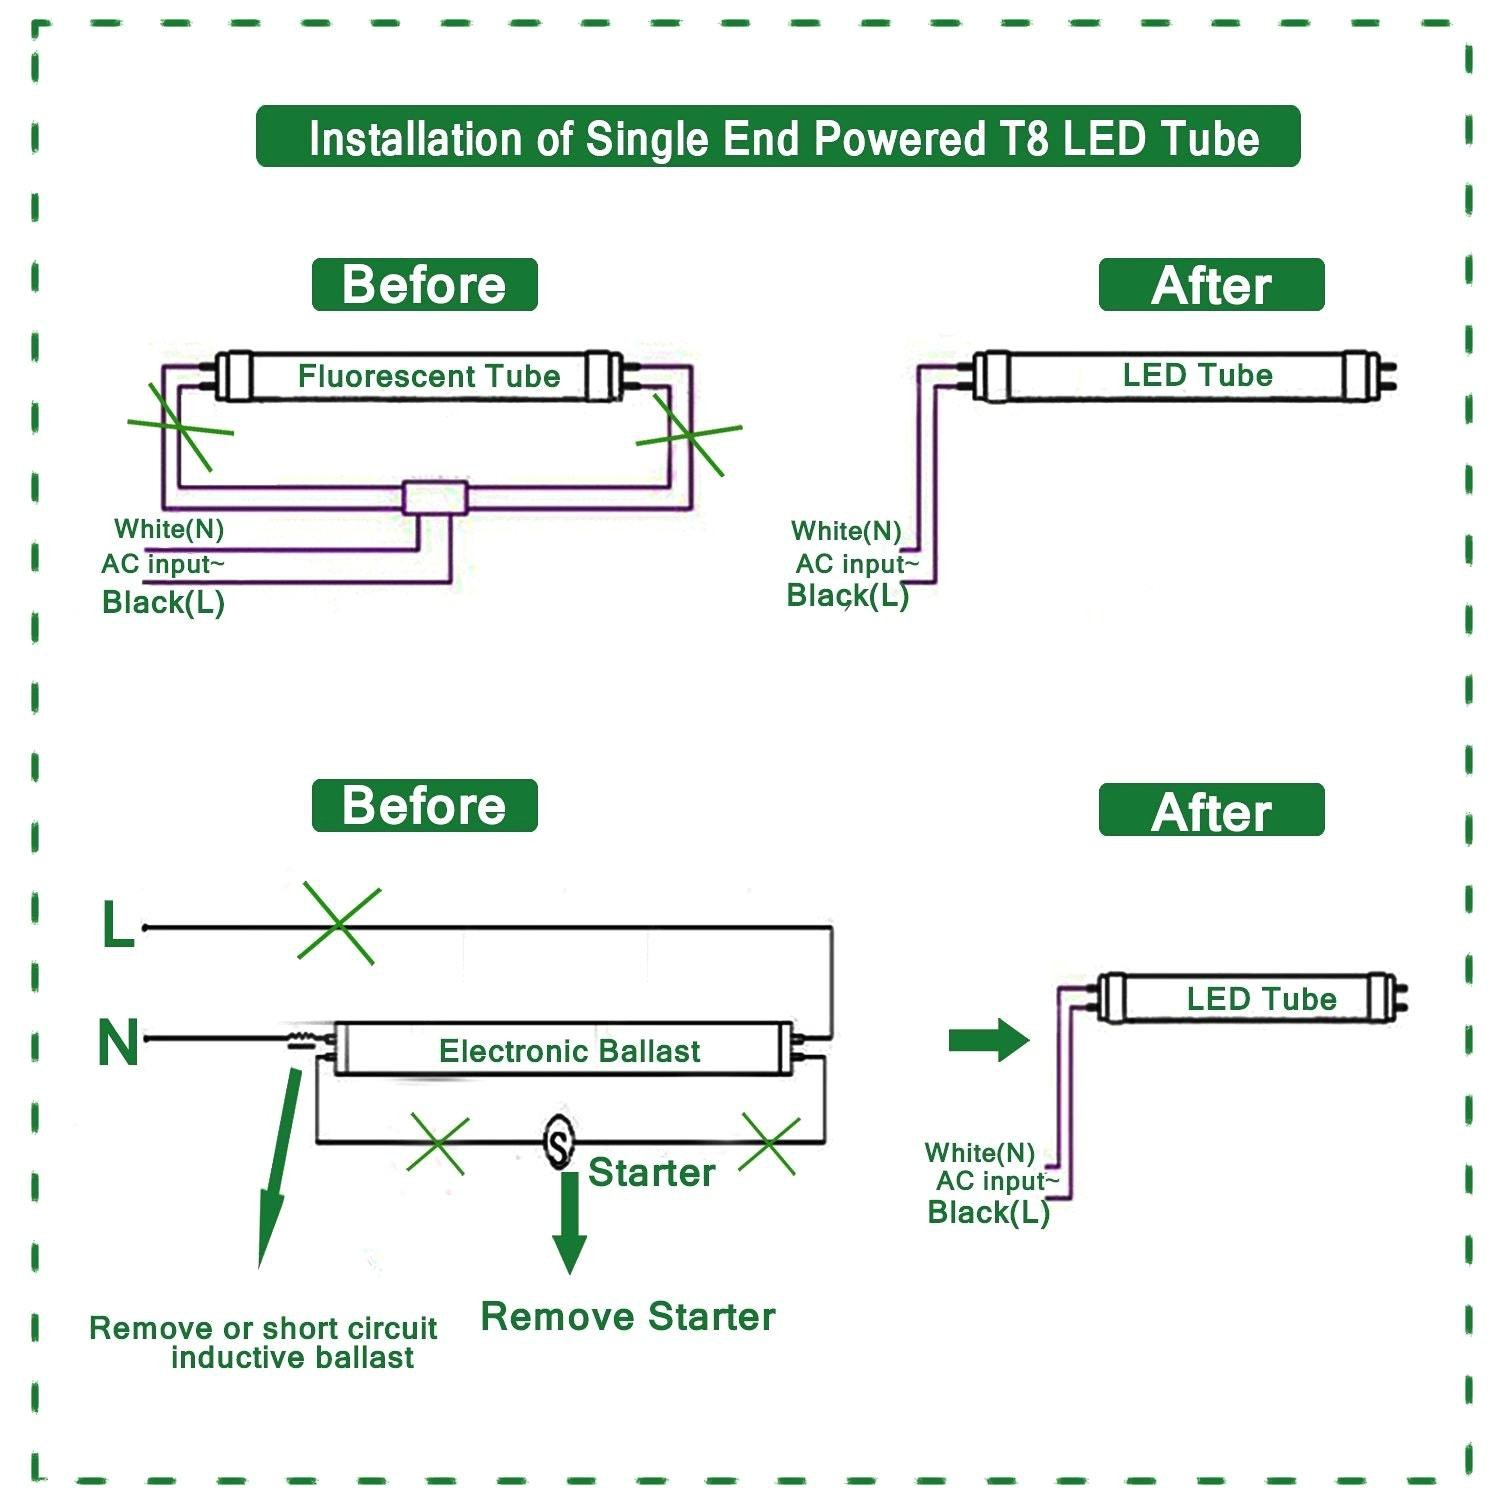 T8 Ballast Wiring Diagram Amazing T8 Ballast Wiring Diagram Contemporary Everything You Need Of T8 Ballast Wiring Diagram